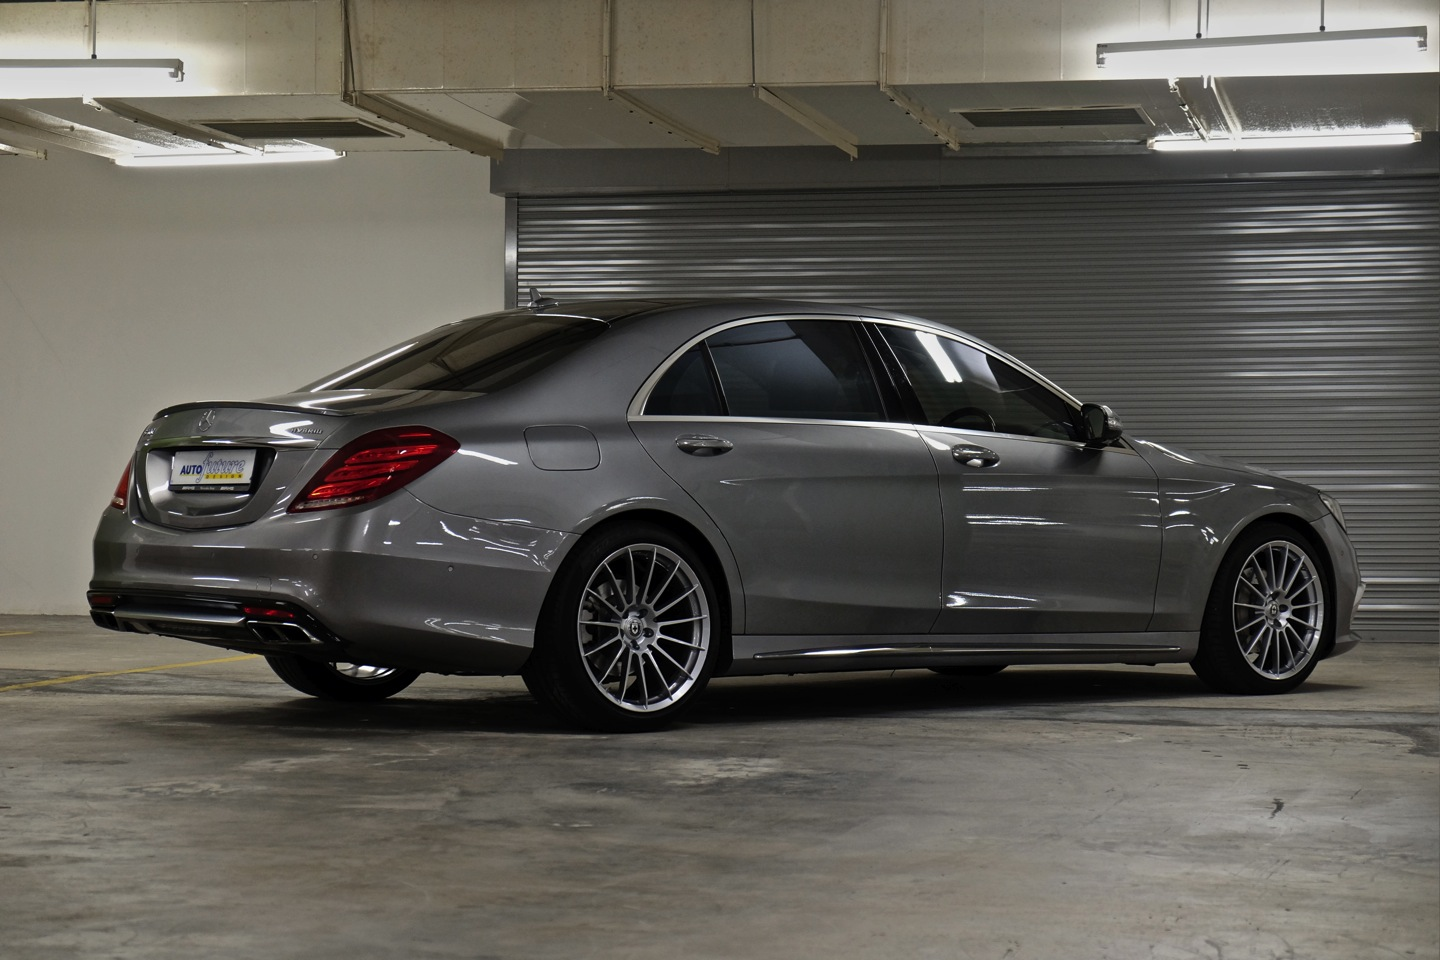 Hre performance flowform ff15 wheels equipped on this for Performance mercedes benz